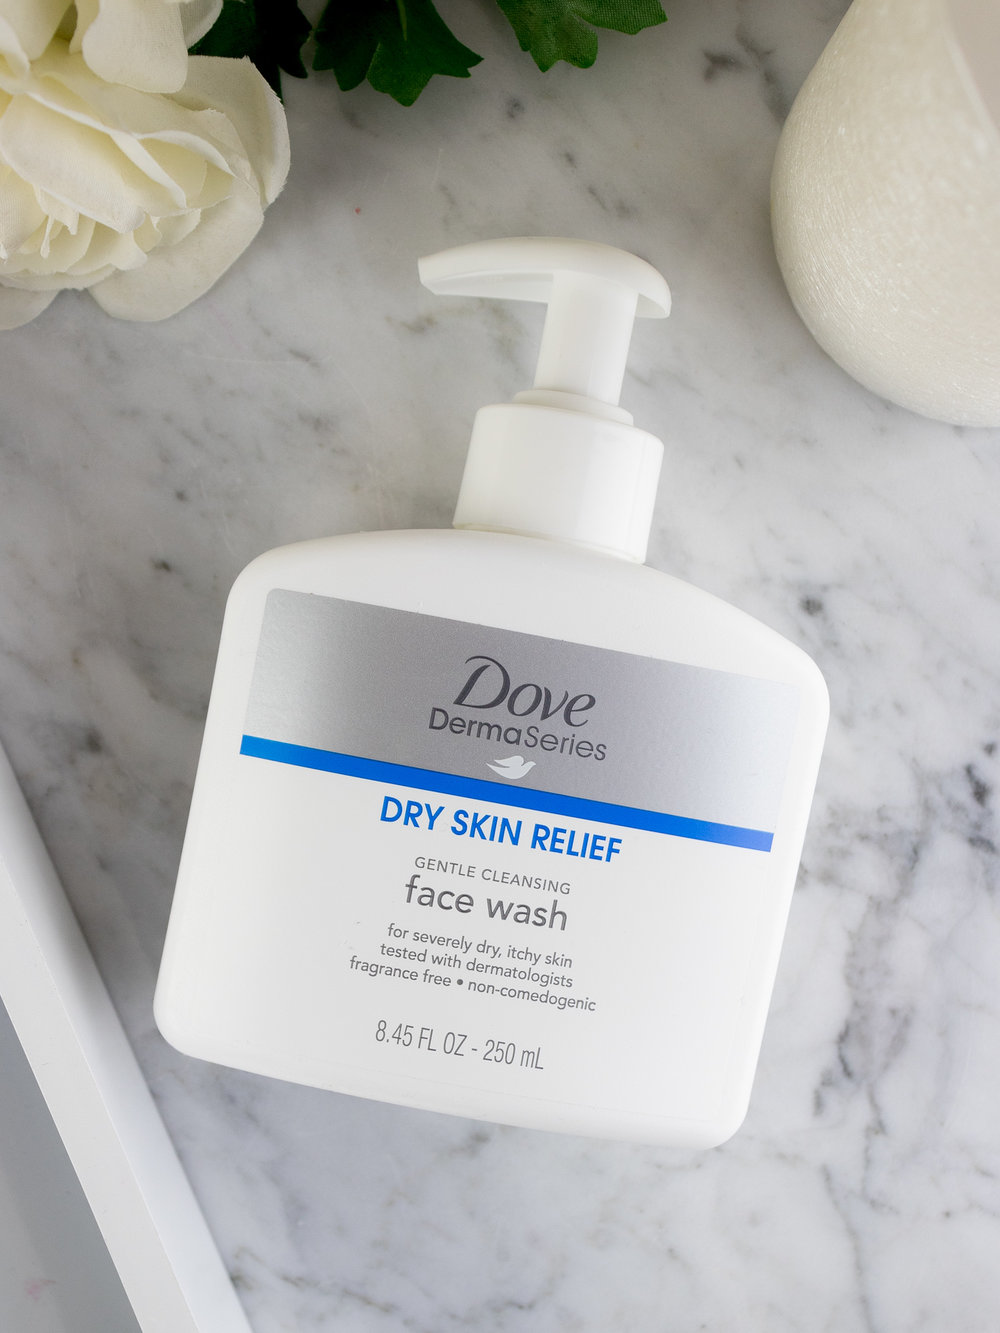 Dove DermaSeries Dry Skin Relief Gentle Cleansing Face Wash